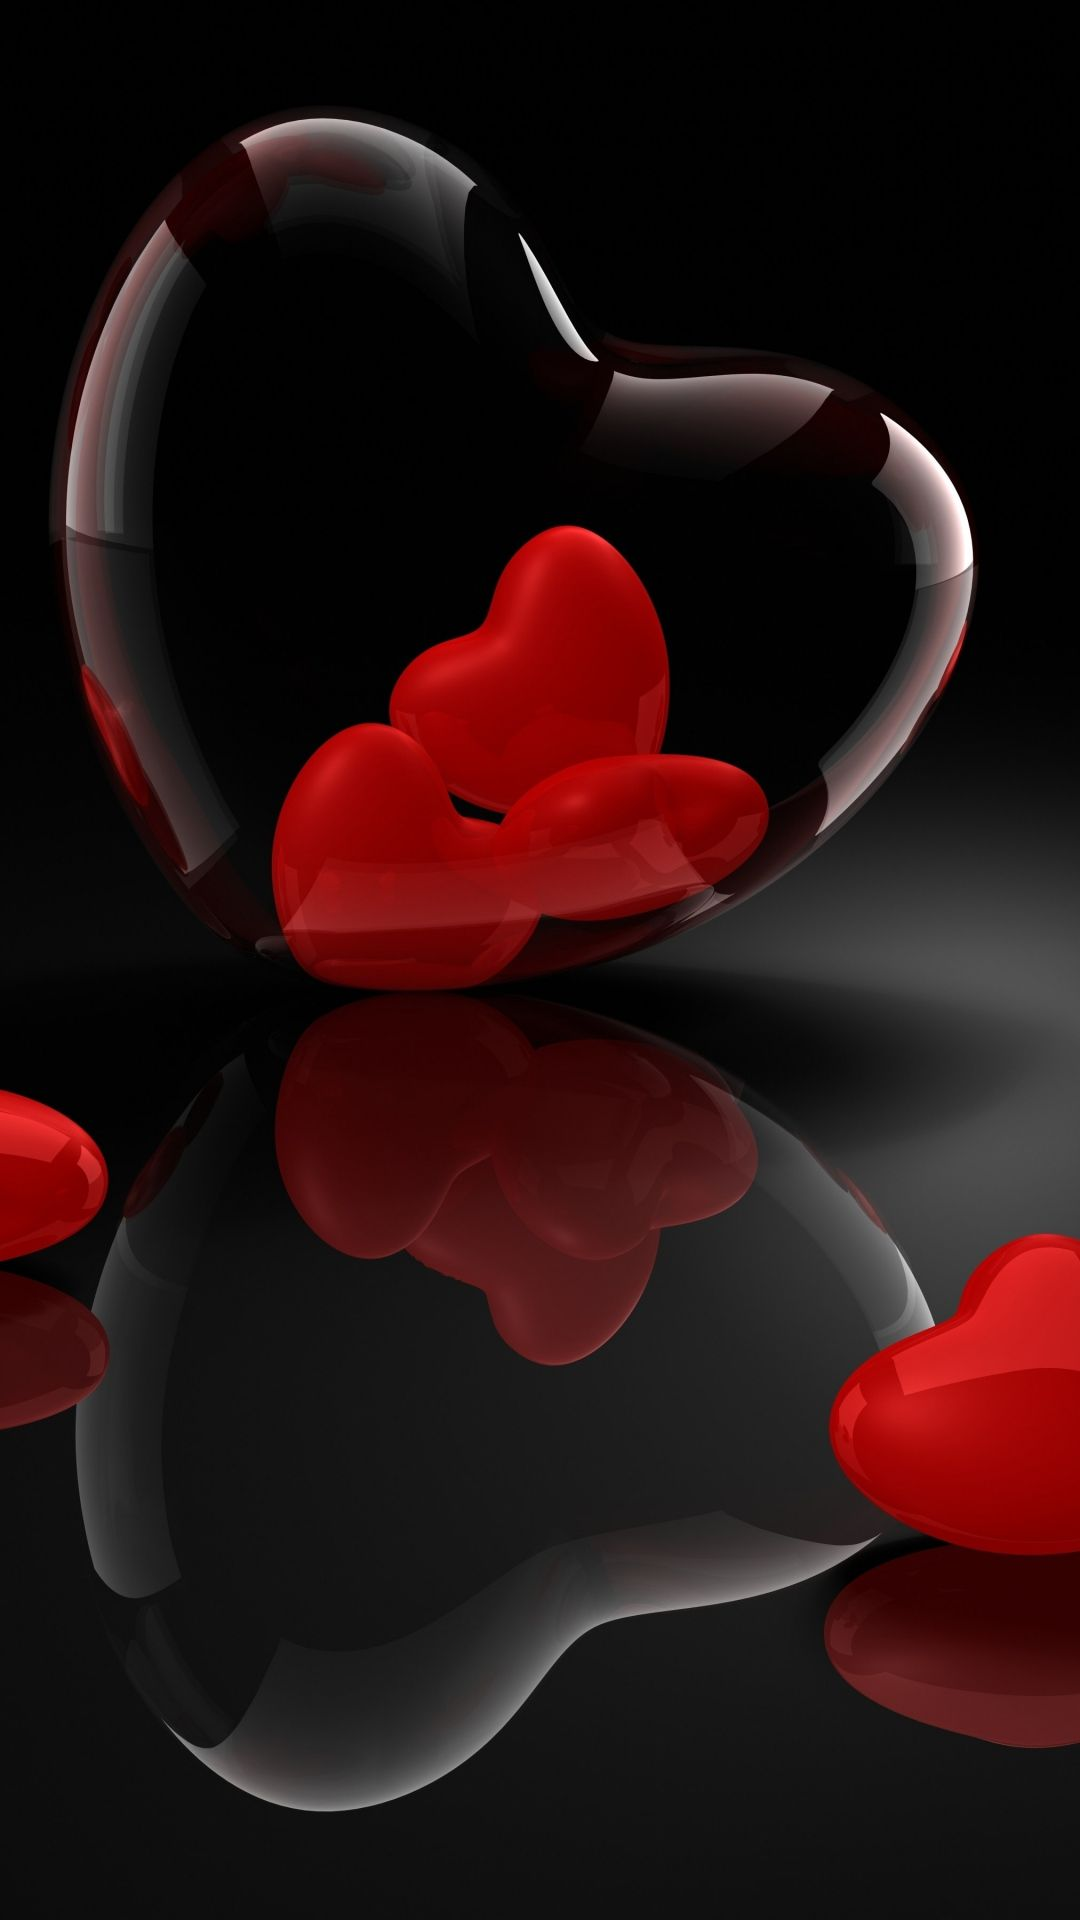 Heart Glass 3d Reflection iPhone 8 Wallpapers | Heart ...